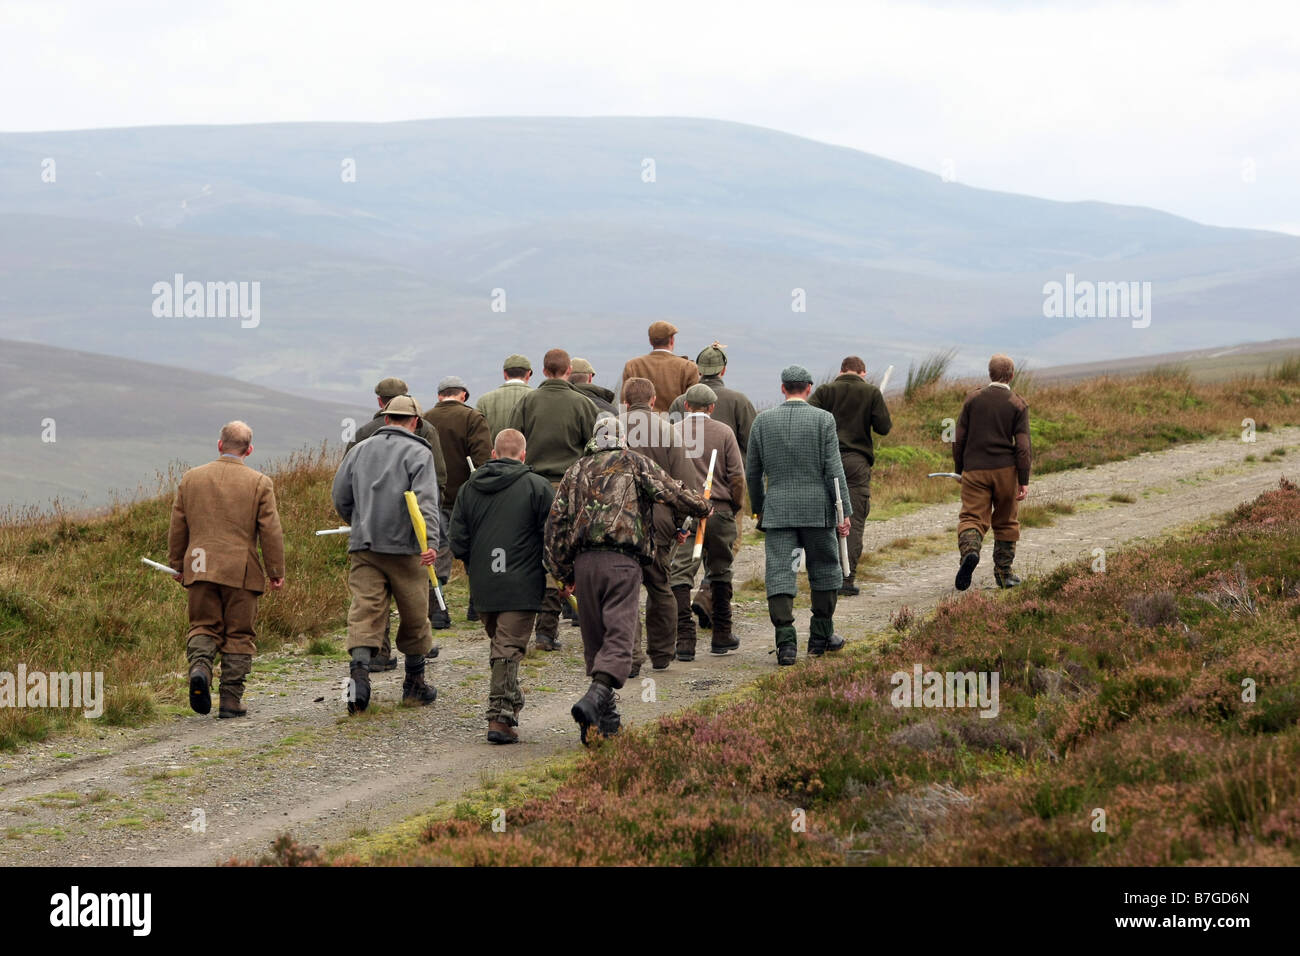 Grouse beaters with flags on a grouse shoot on moors in Scotland, UK - Stock Image